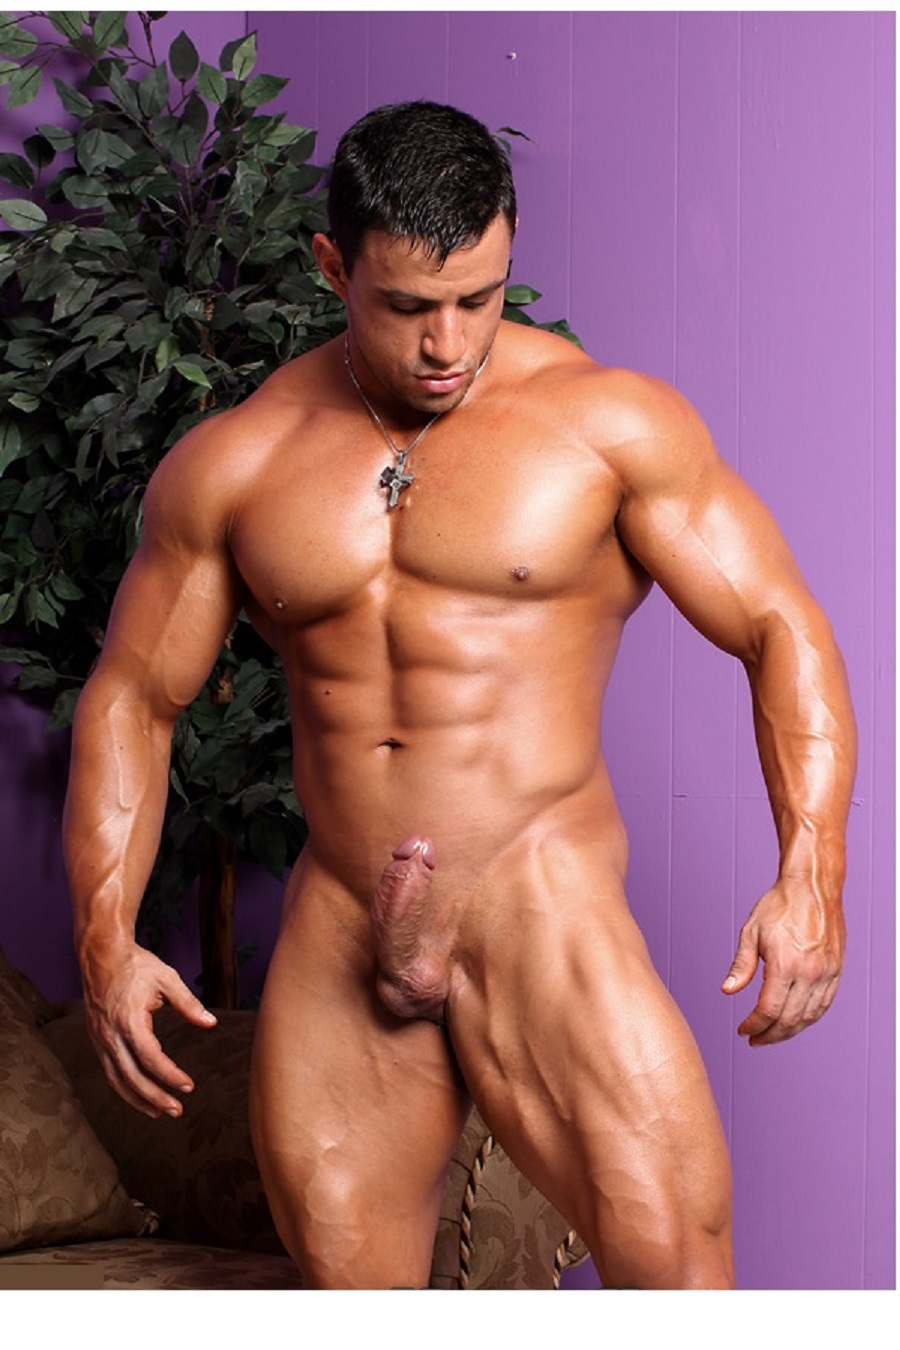 Agree, Body building nude male very pity